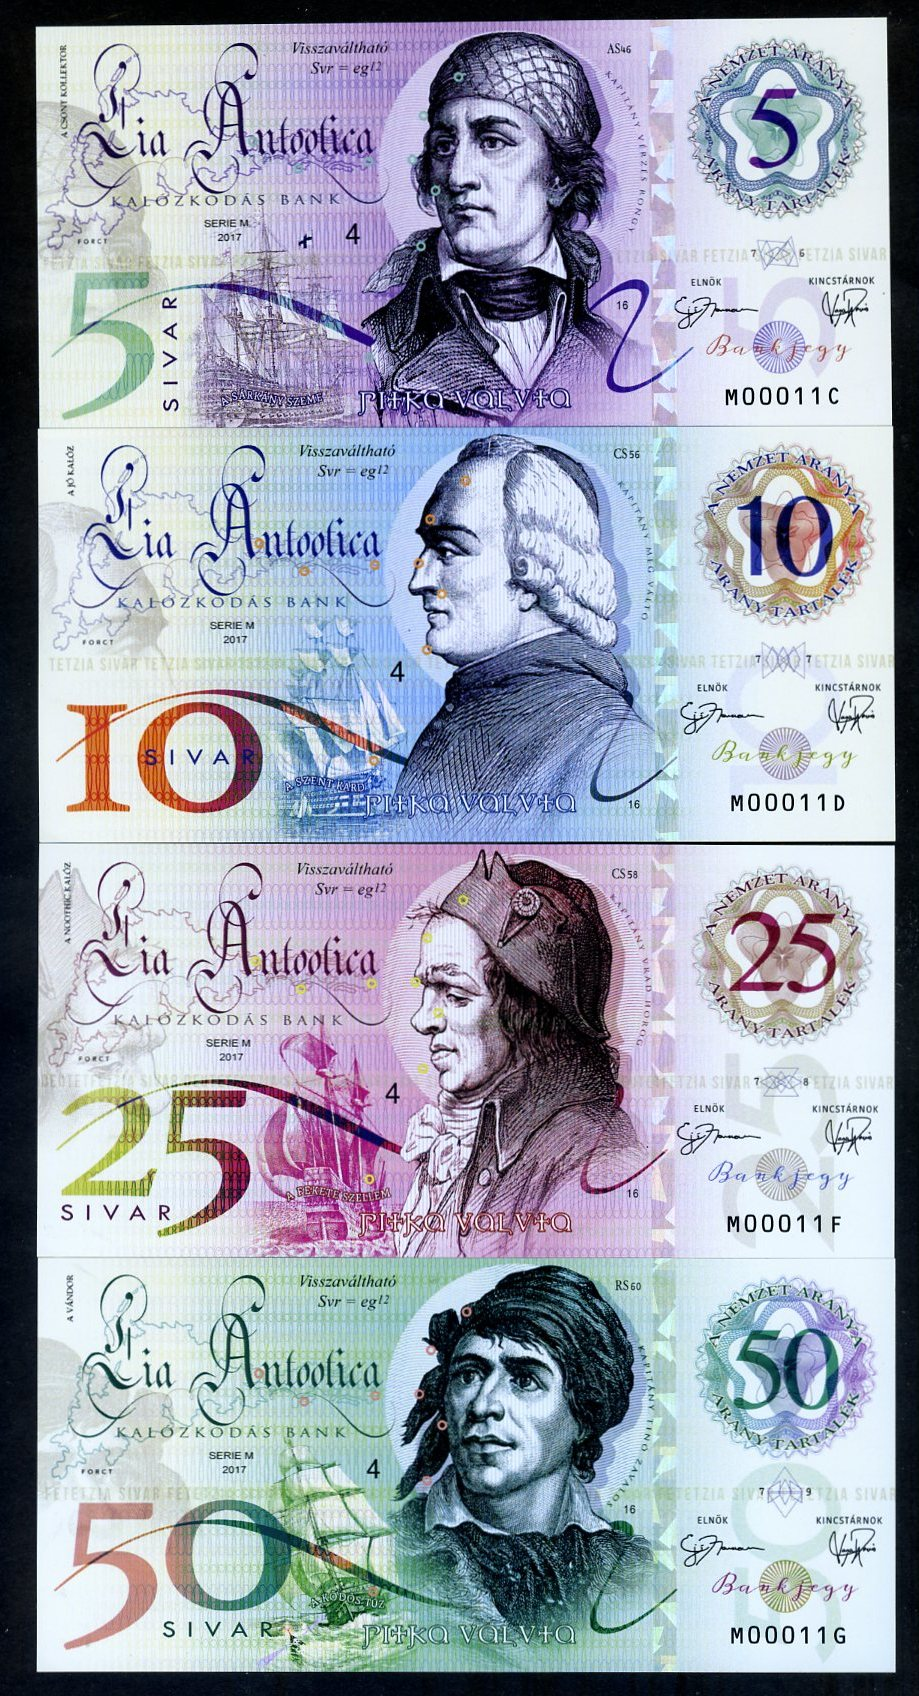 Lia Antootica Set Polymer-UNC /> Pirate-Notes 5-10-25-50 Sivar 2017